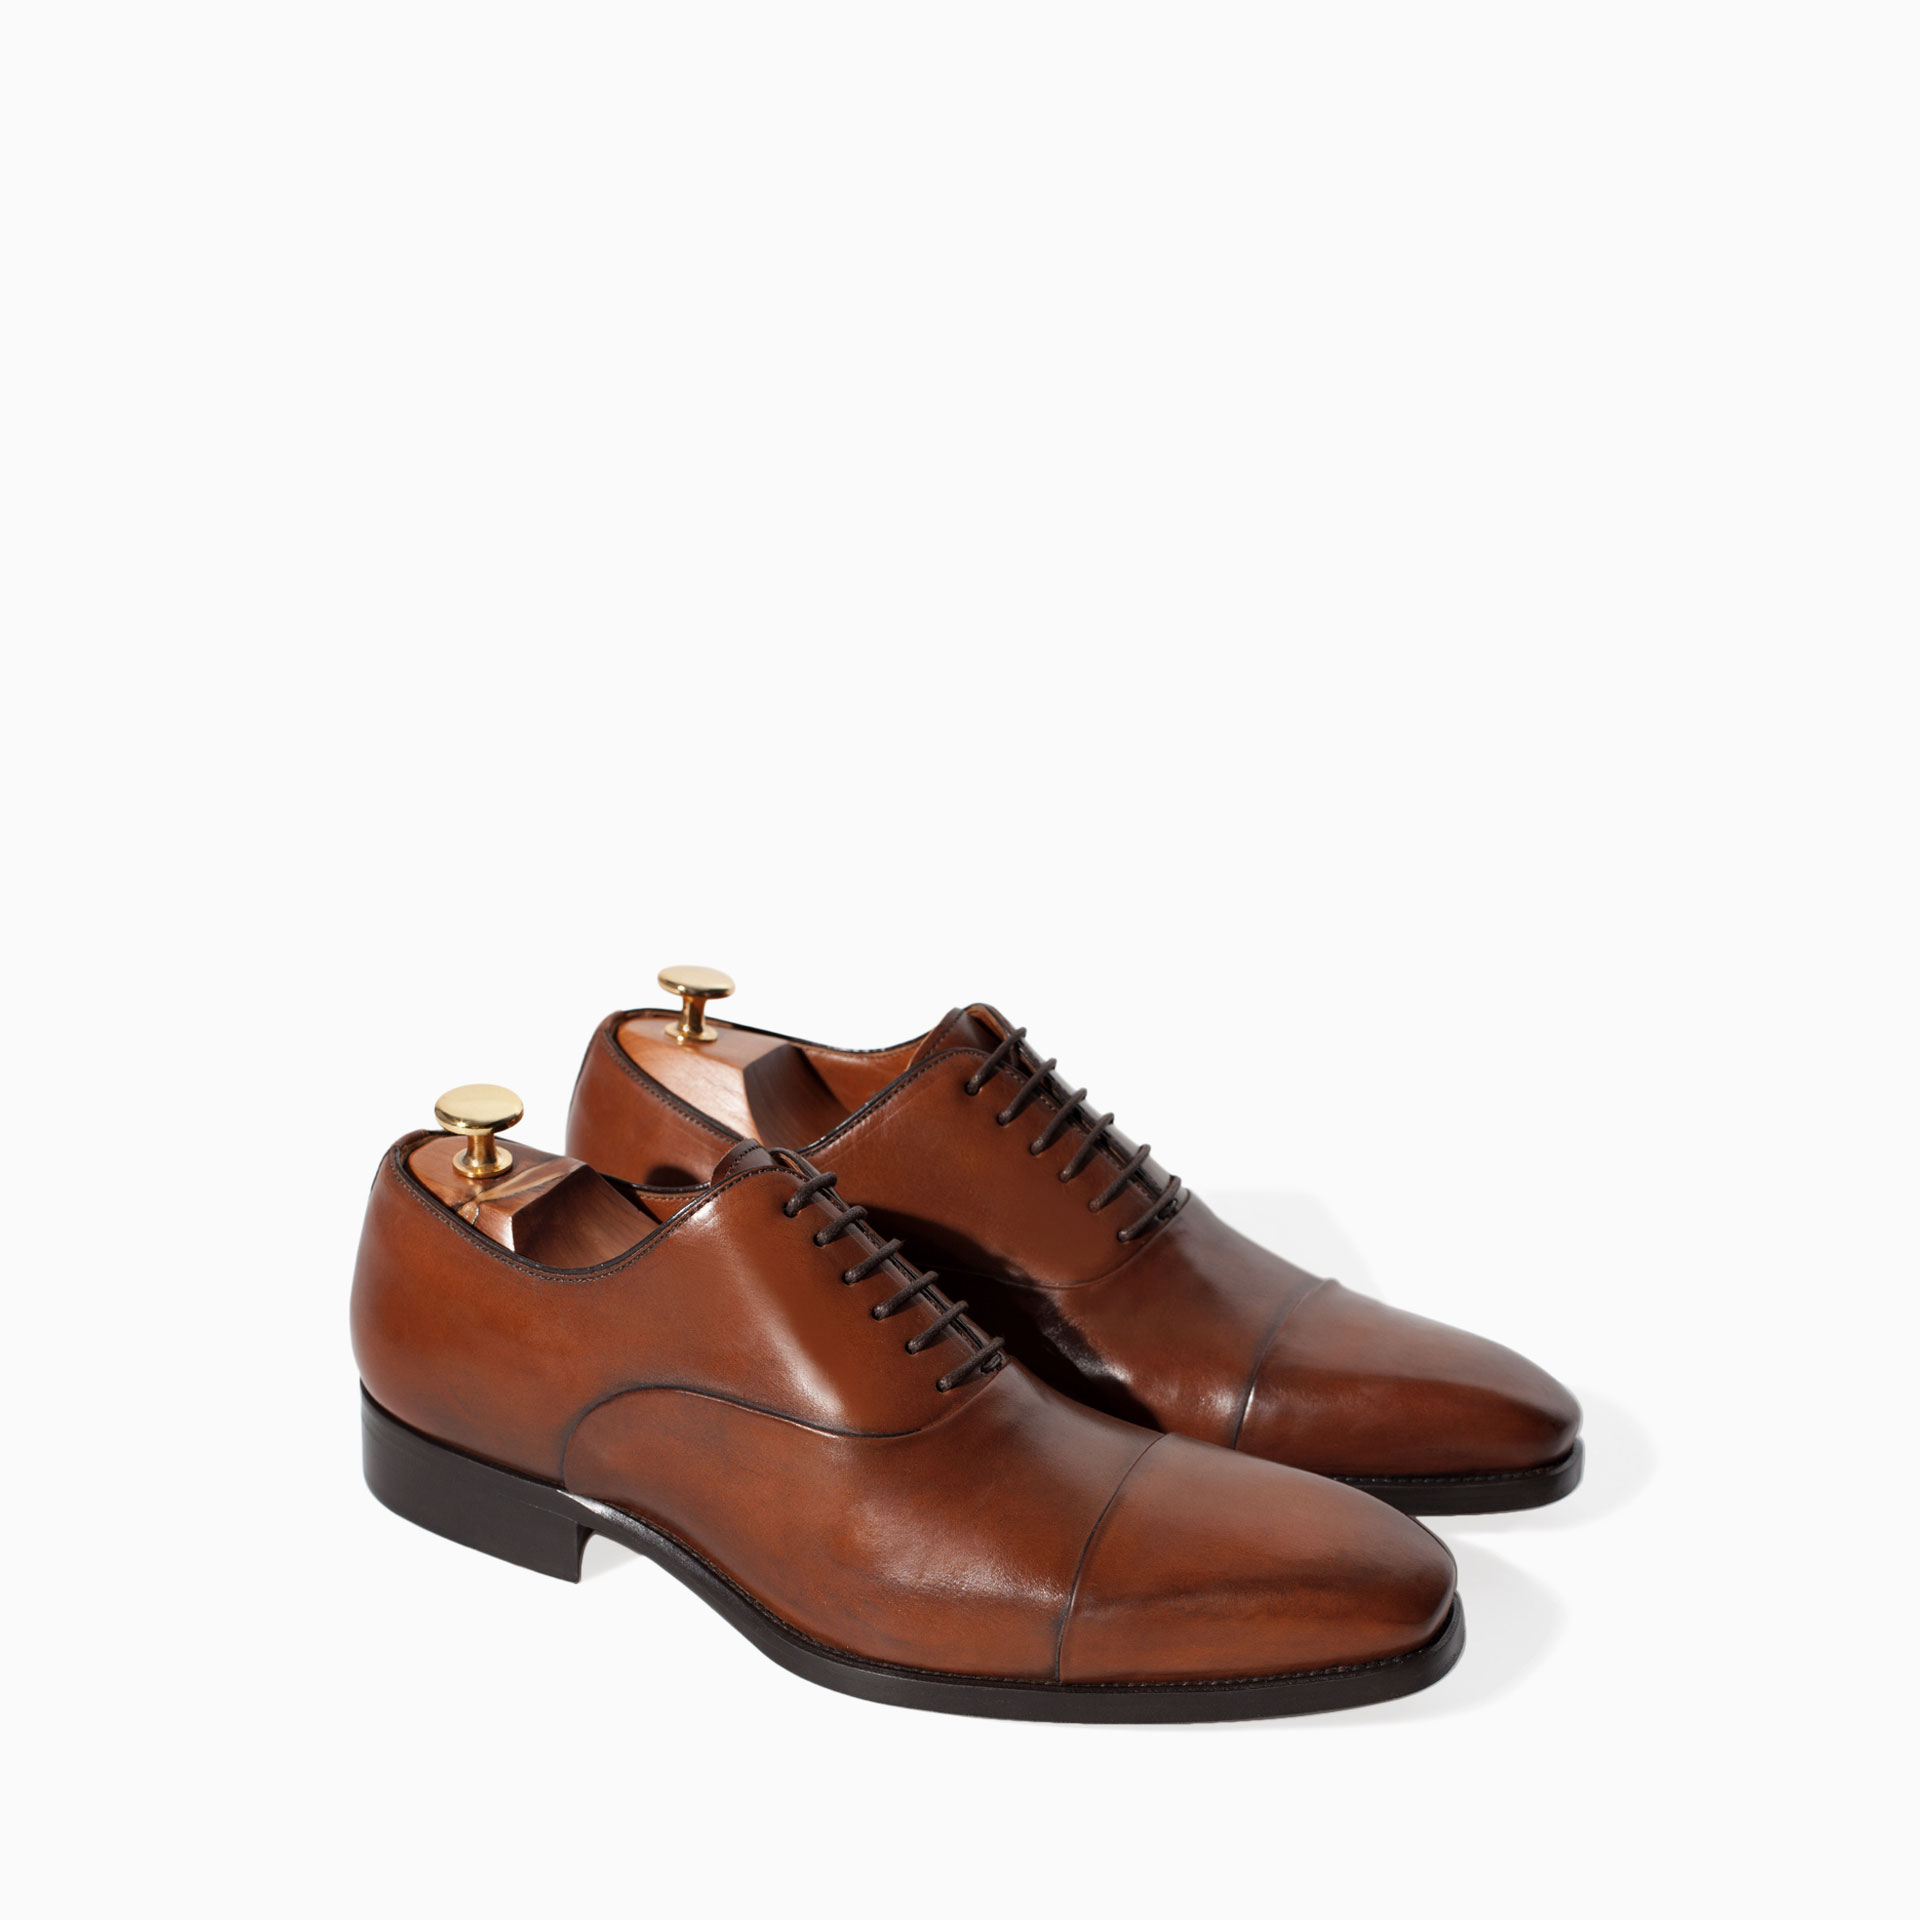 zara limited edition leather oxford shoe in brown for